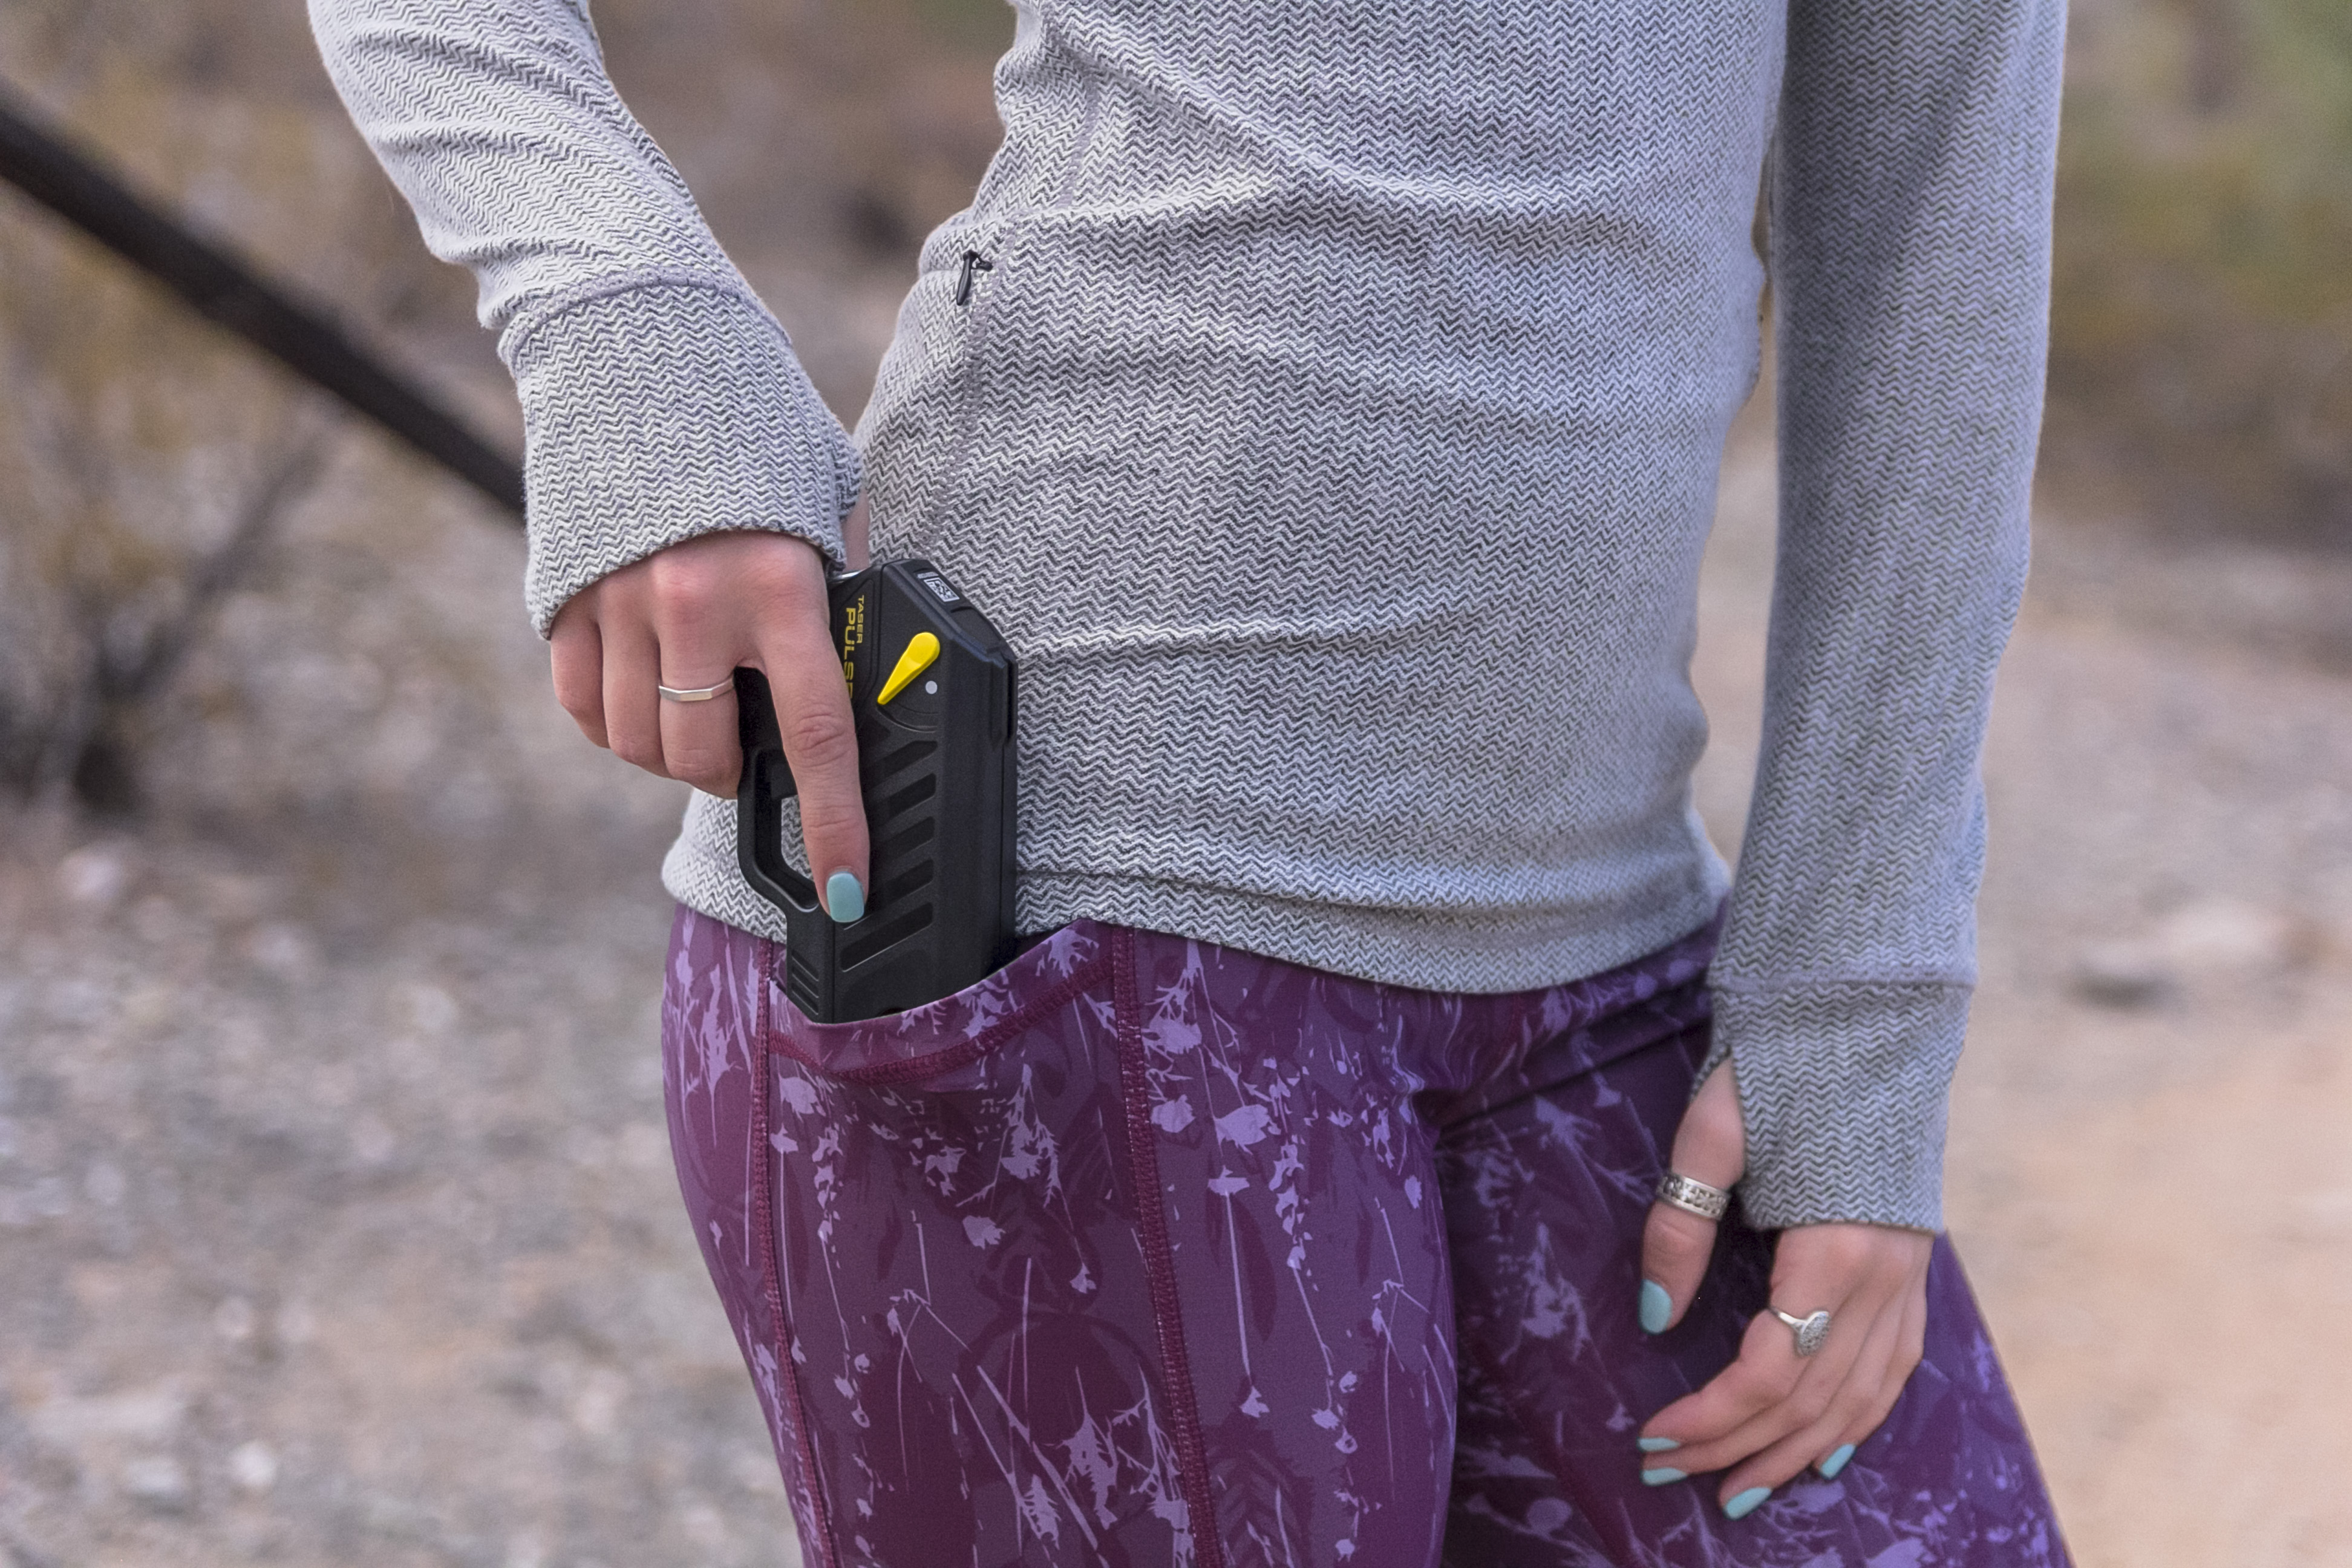 Carrying a TASER Device